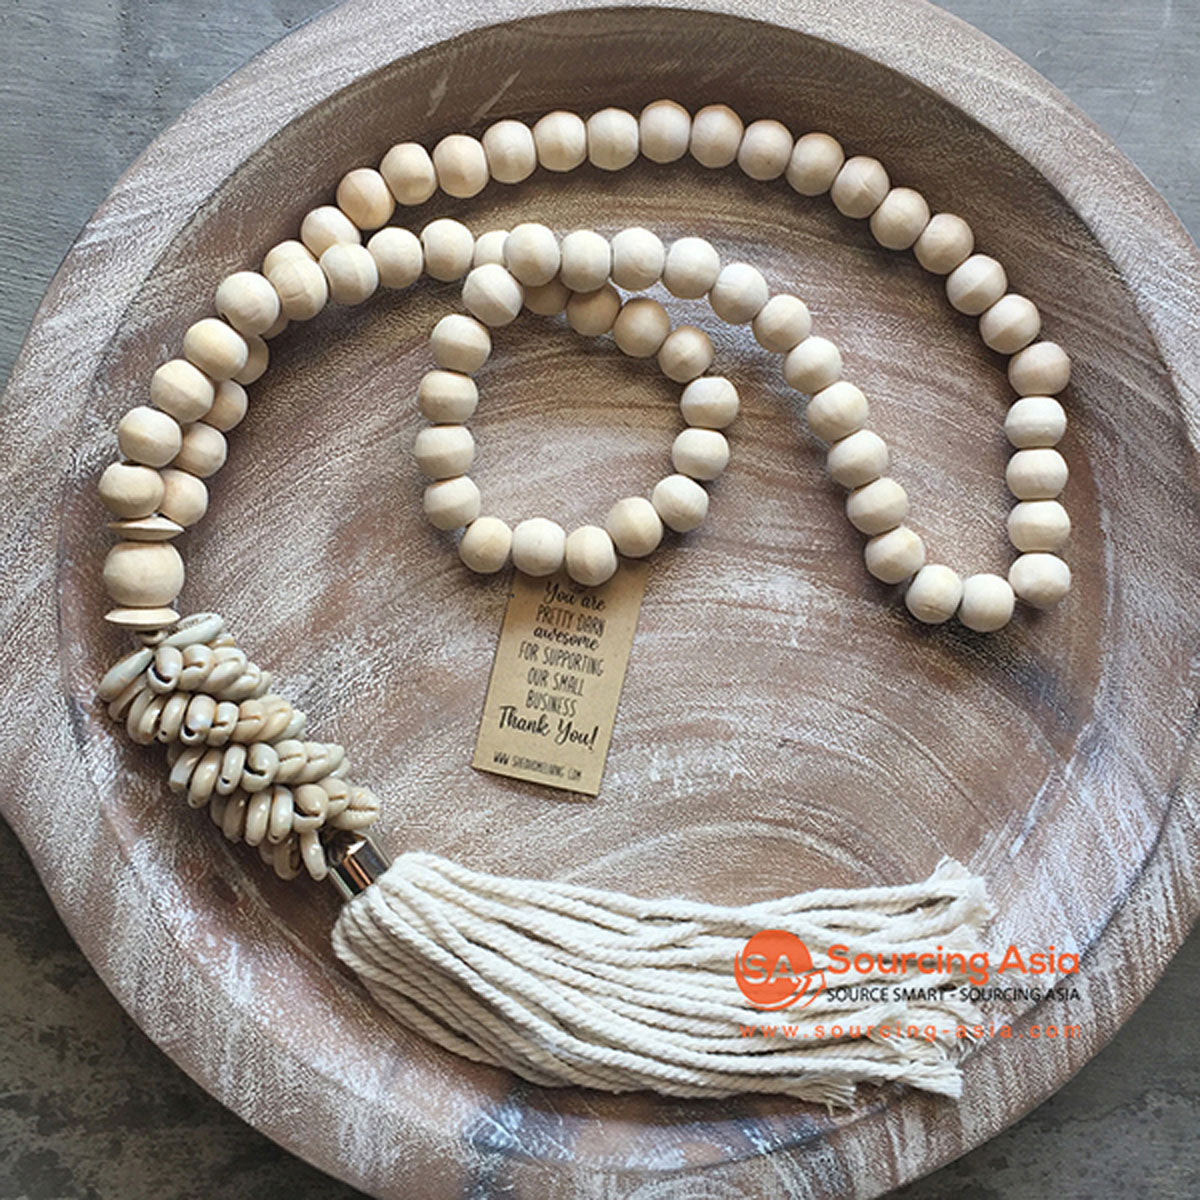 SHL047-12 NATURAL TIMBER BEADS AND COWRIE SHELL DECORATIVE TASSEL WITH MACRAME YARN